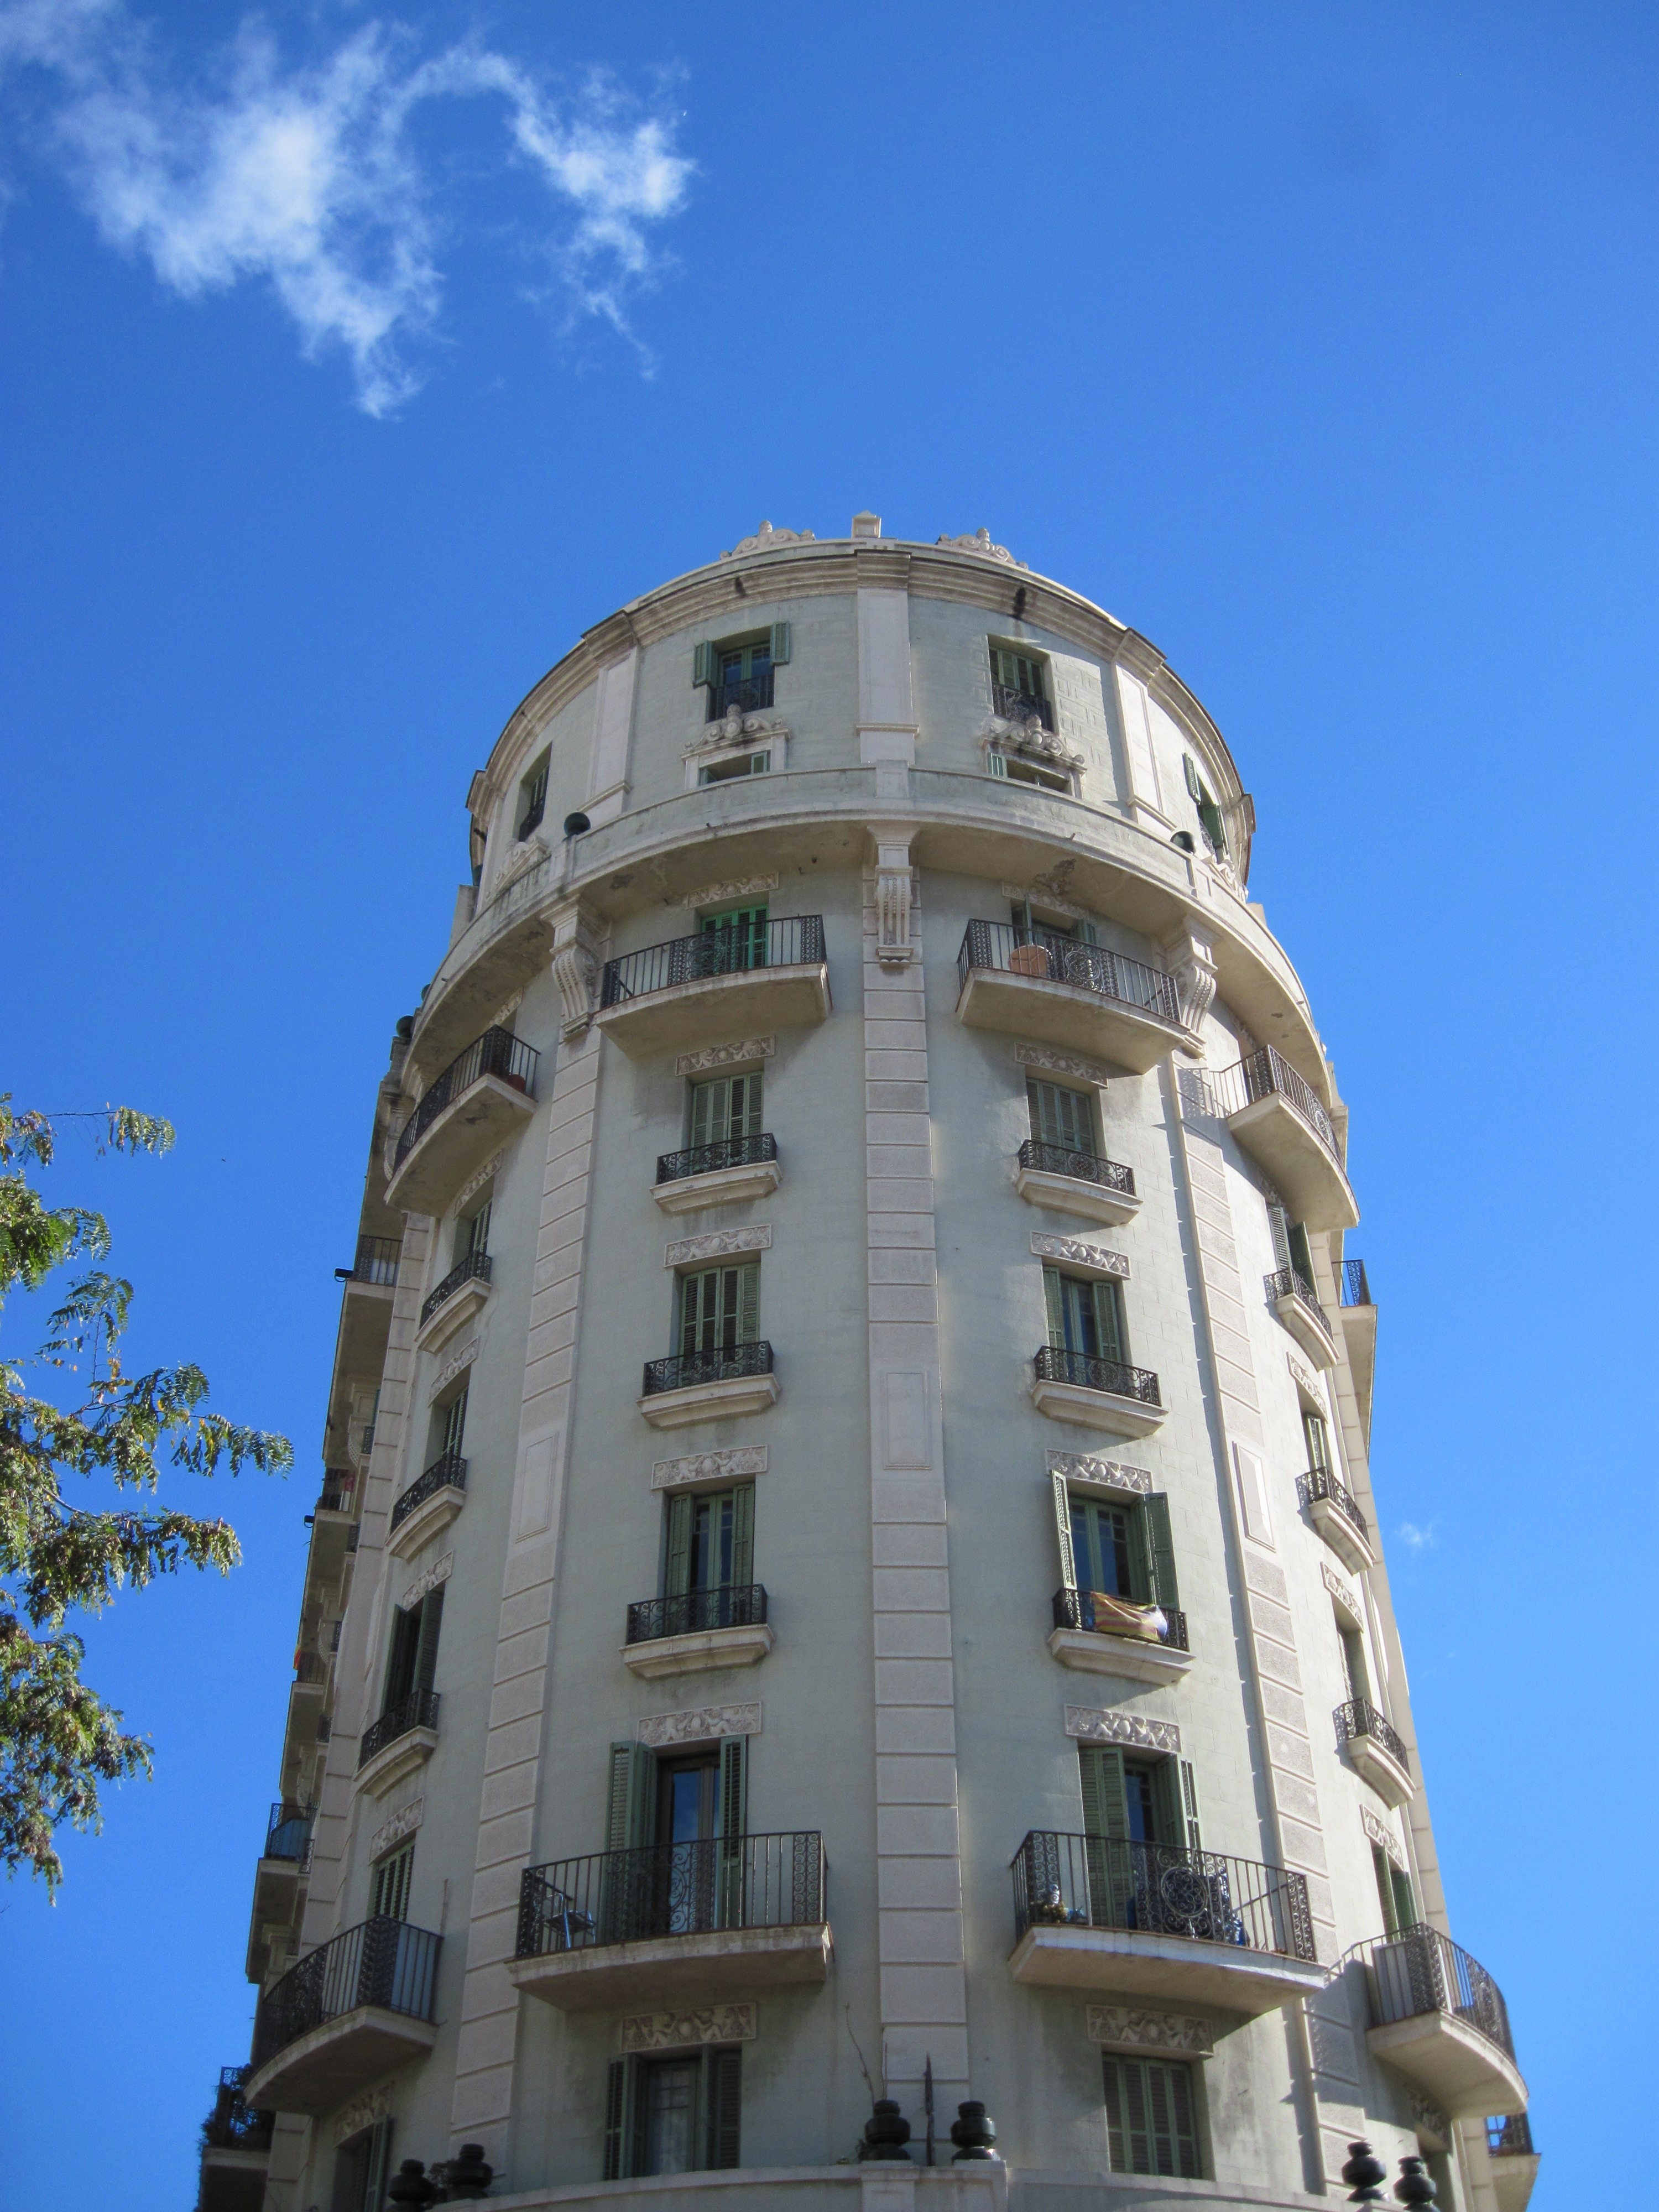 Round building in barcelona, spain photo